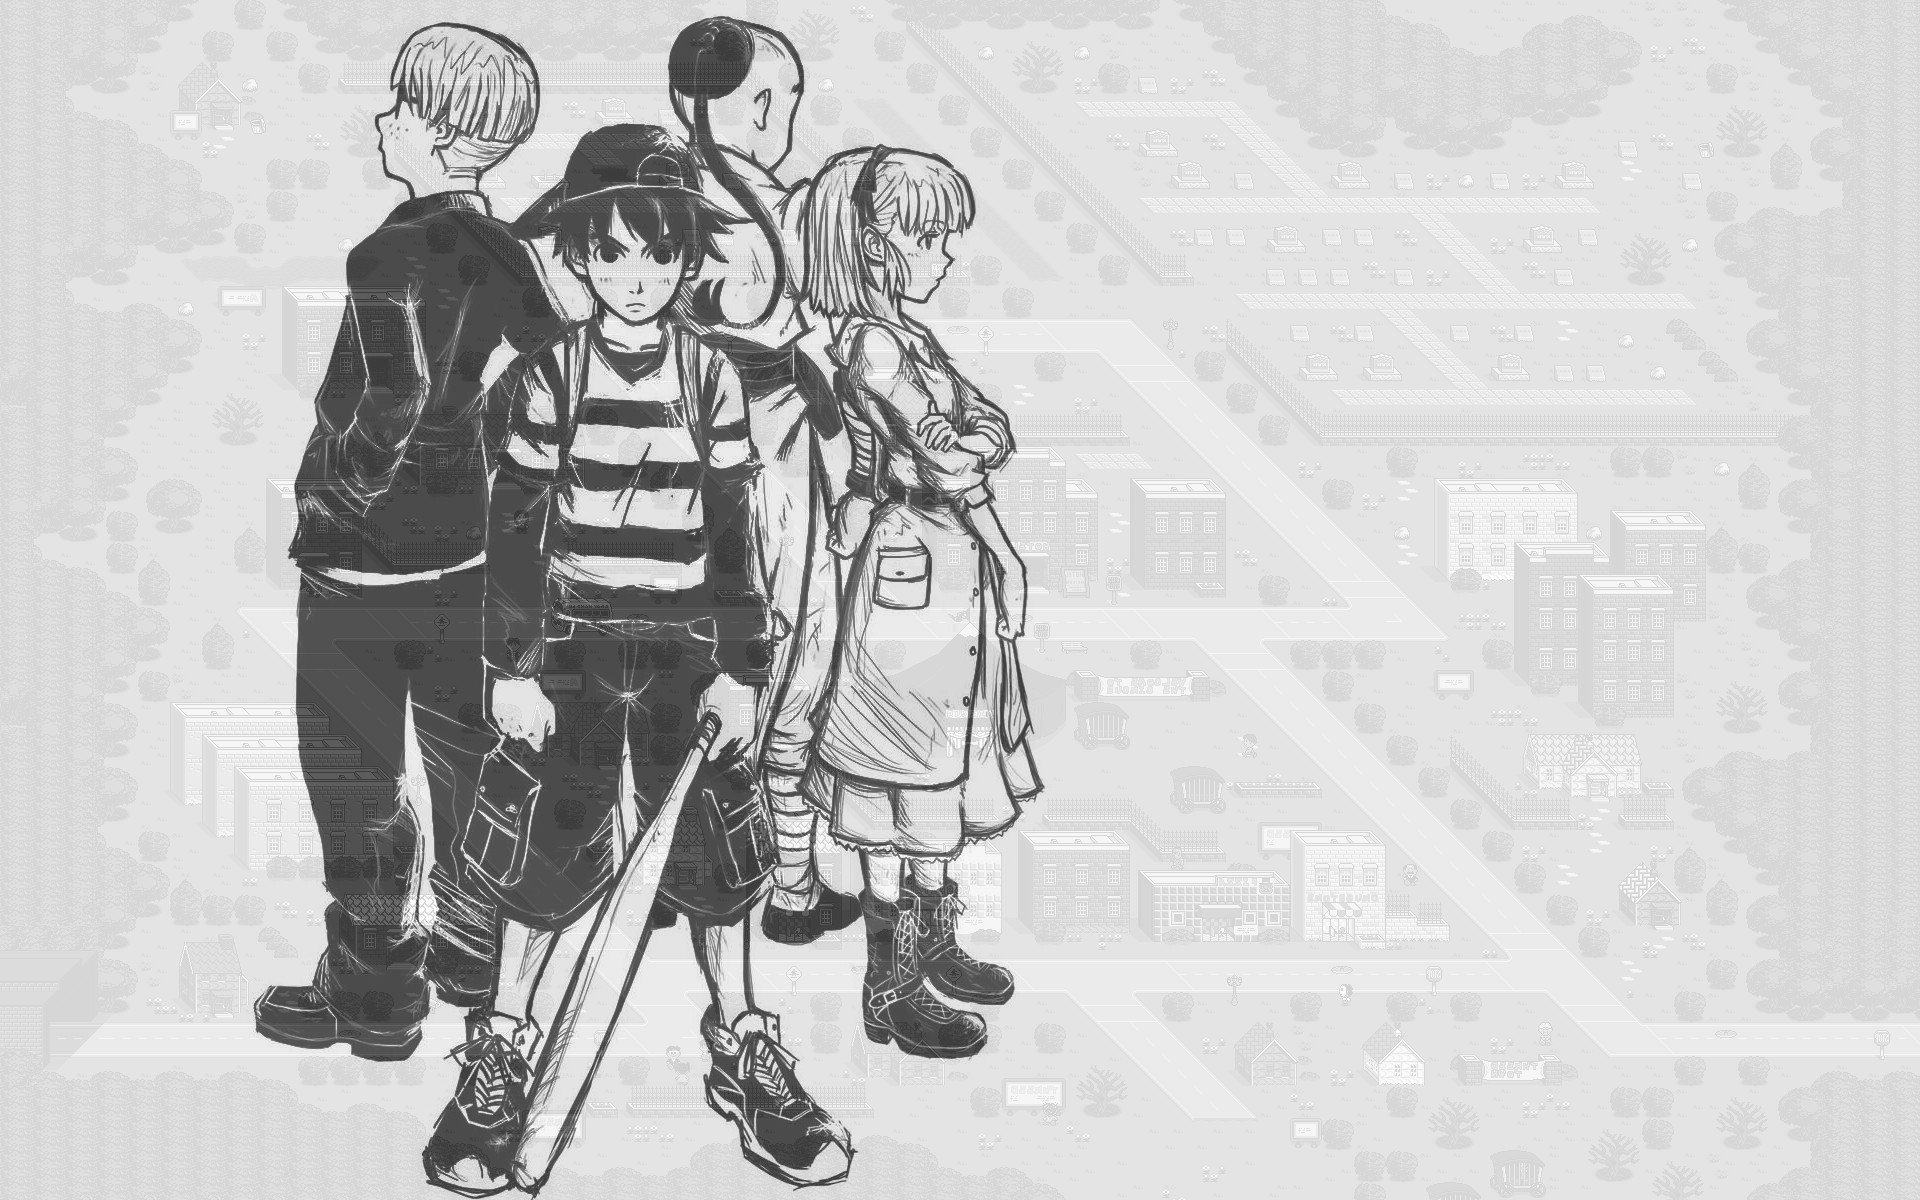 1920x1200 EarthBound HD Wallpaper 1920x1080 EarthBound HD Wallpaper